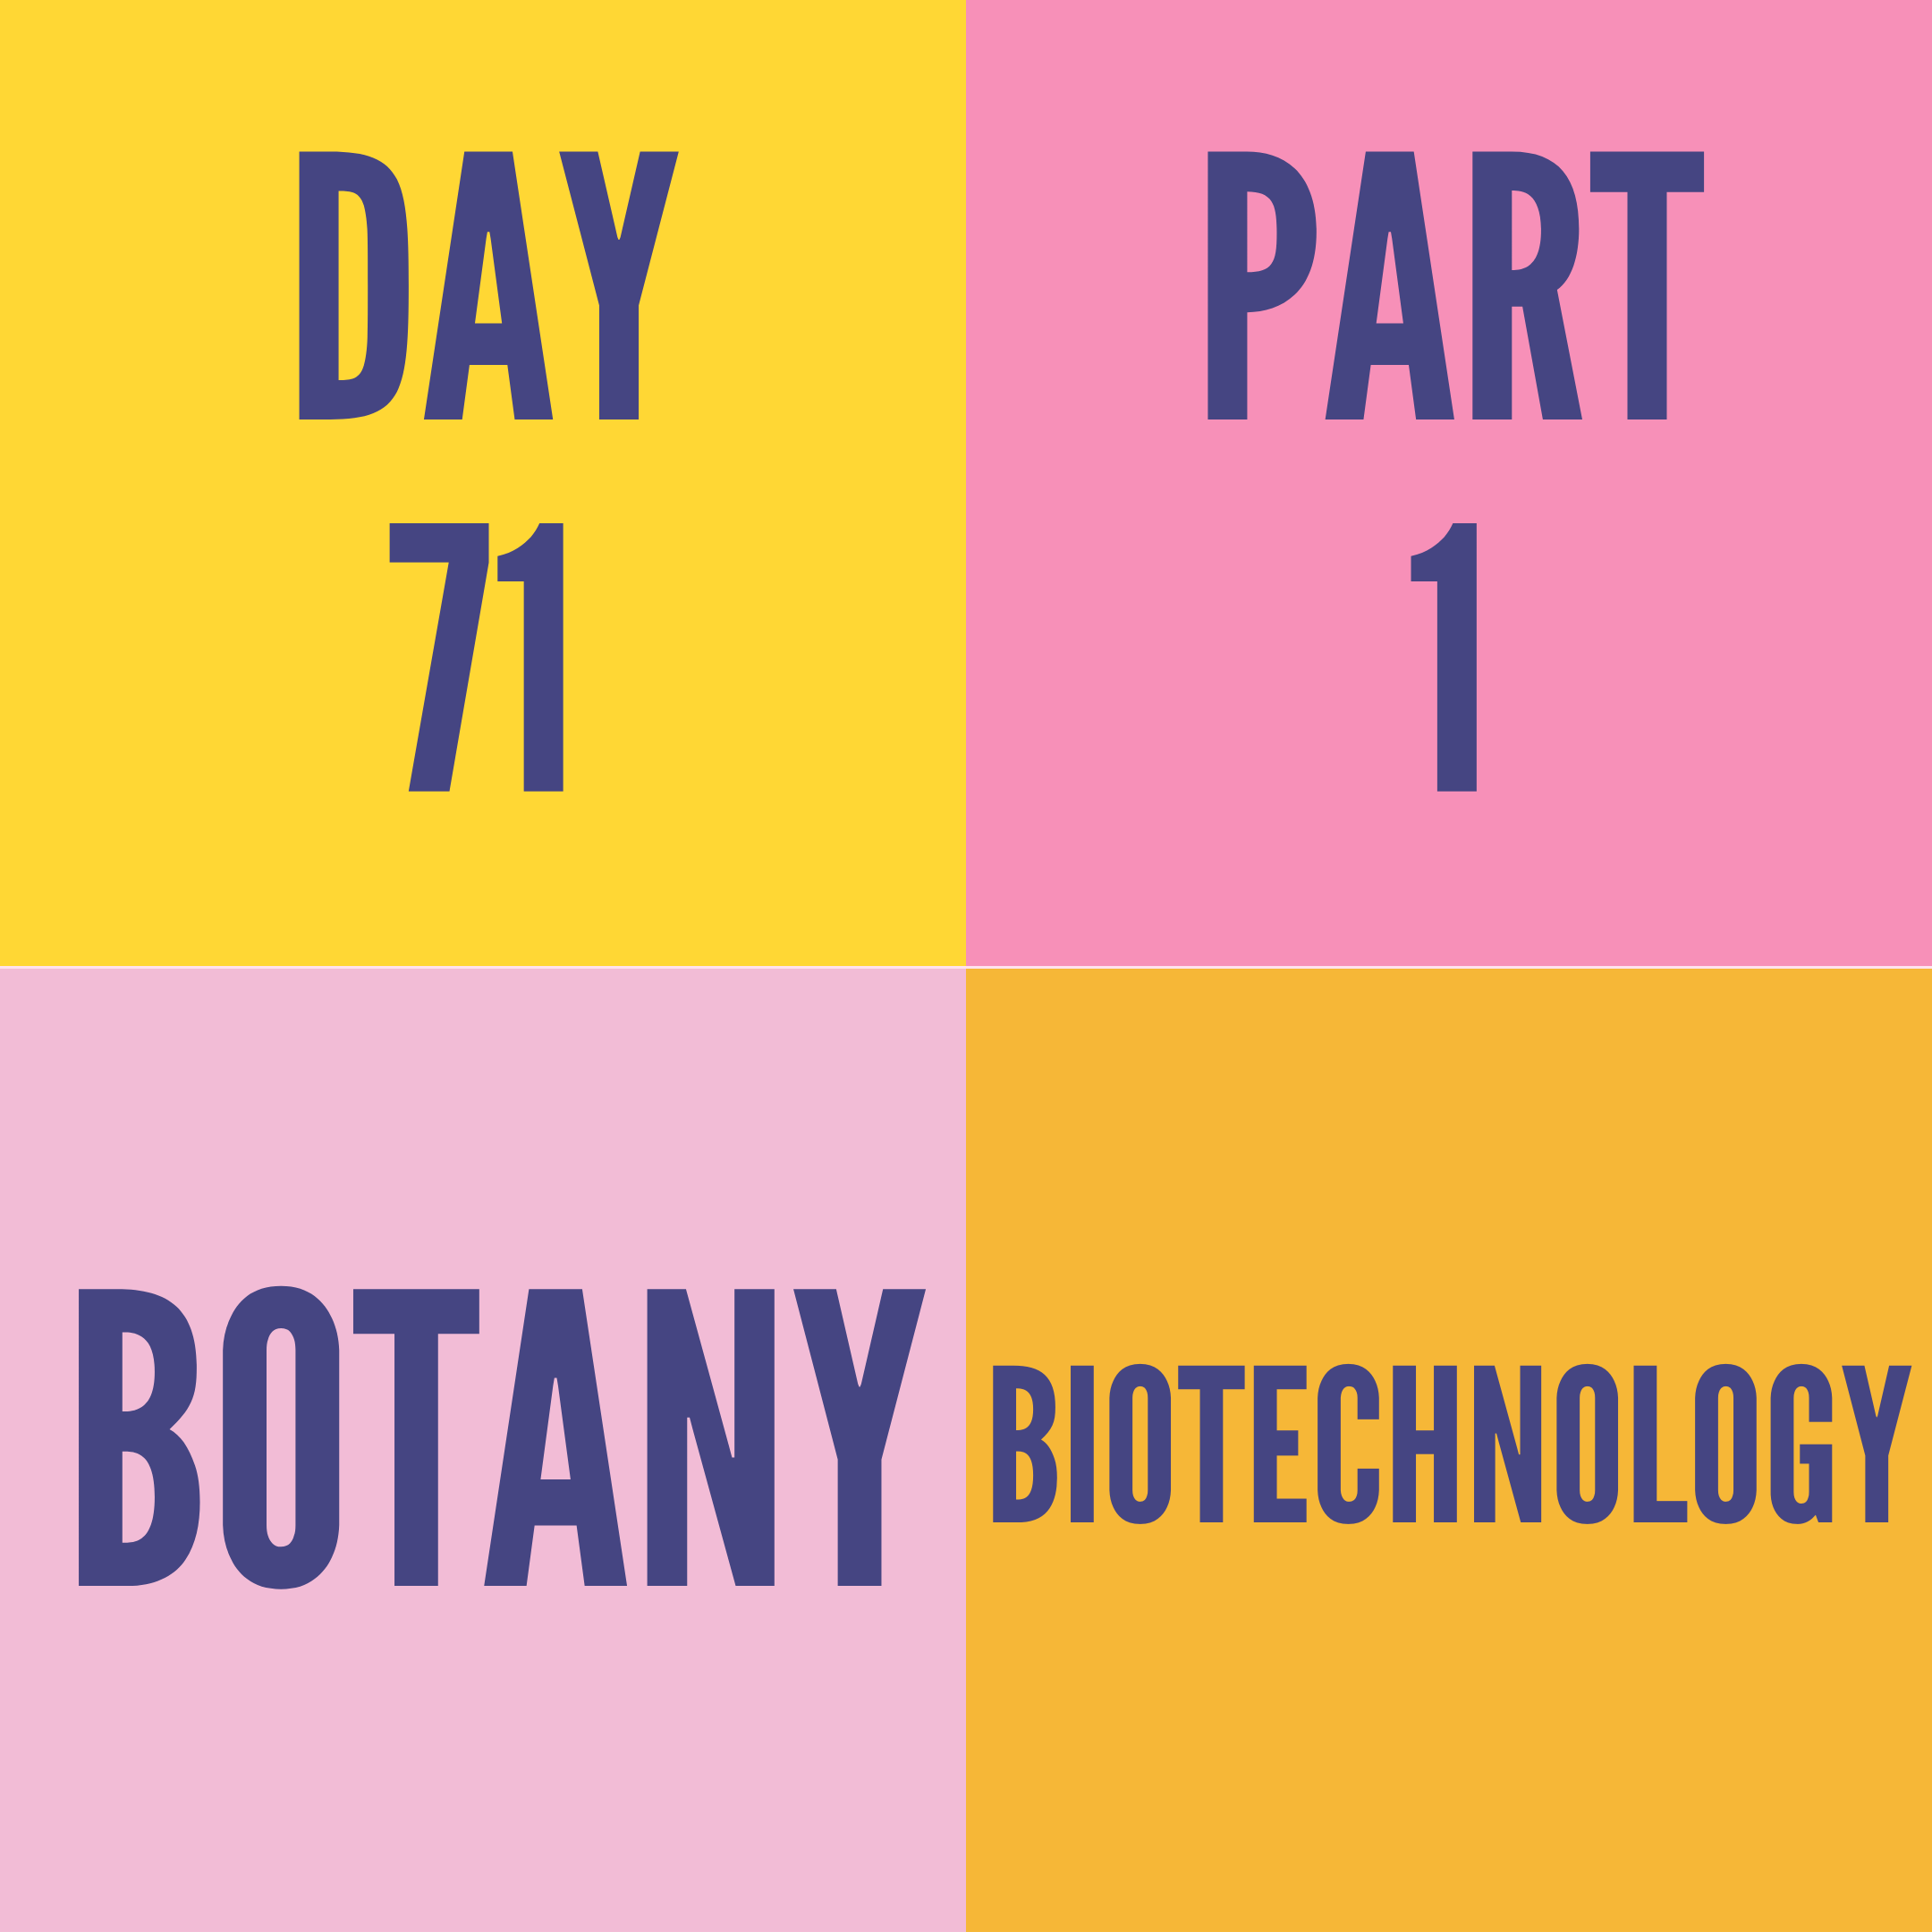 DAY-71 PART-1 BIOTECHNOLOGY